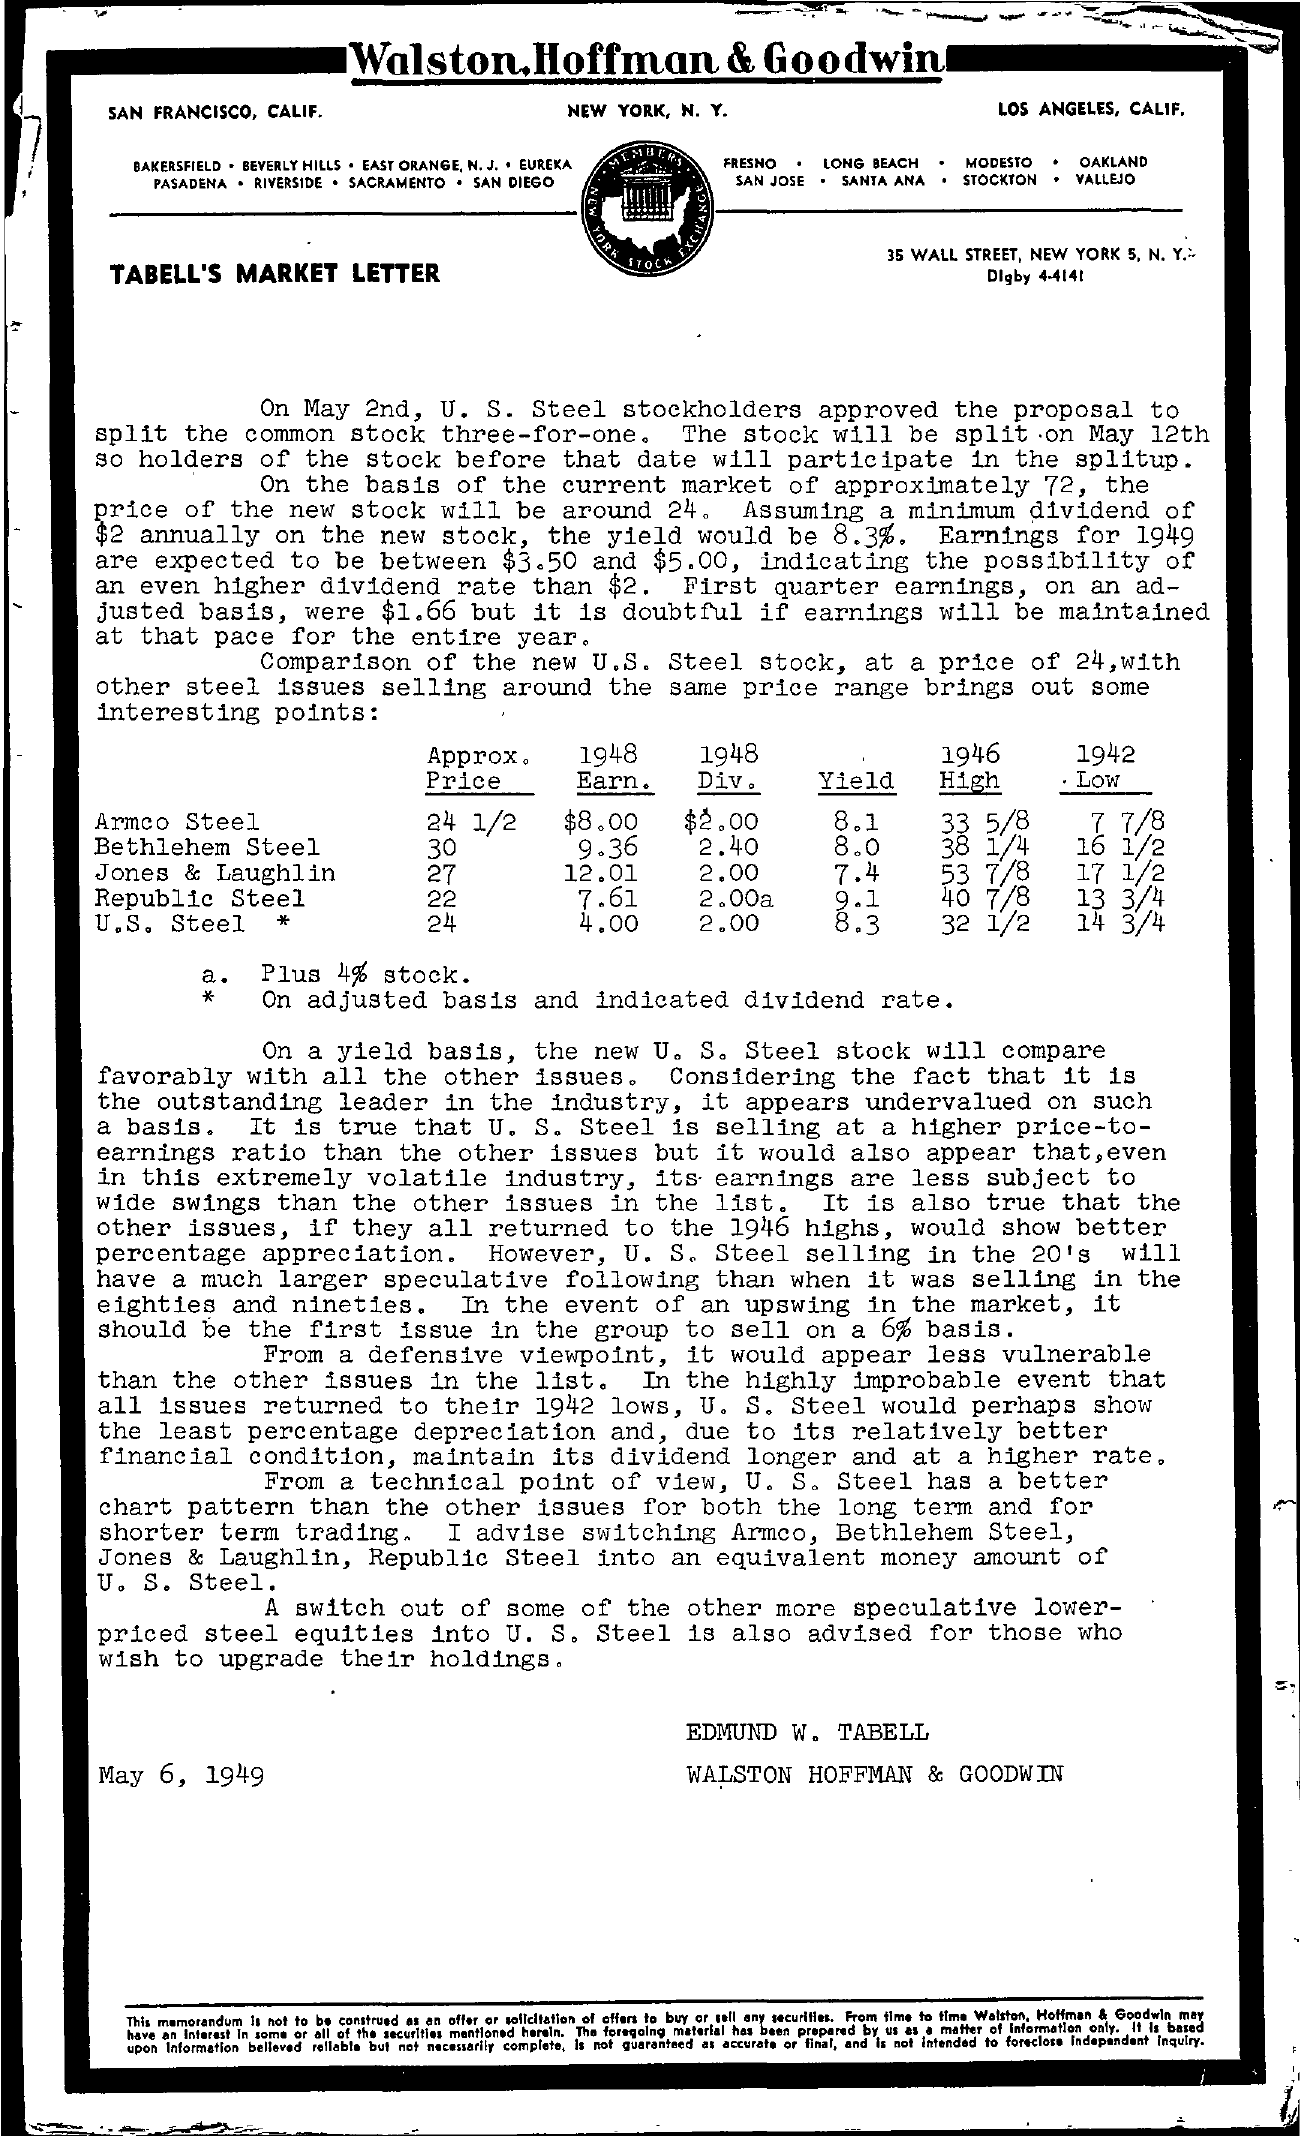 Tabell's Market Letter - May 06, 1949